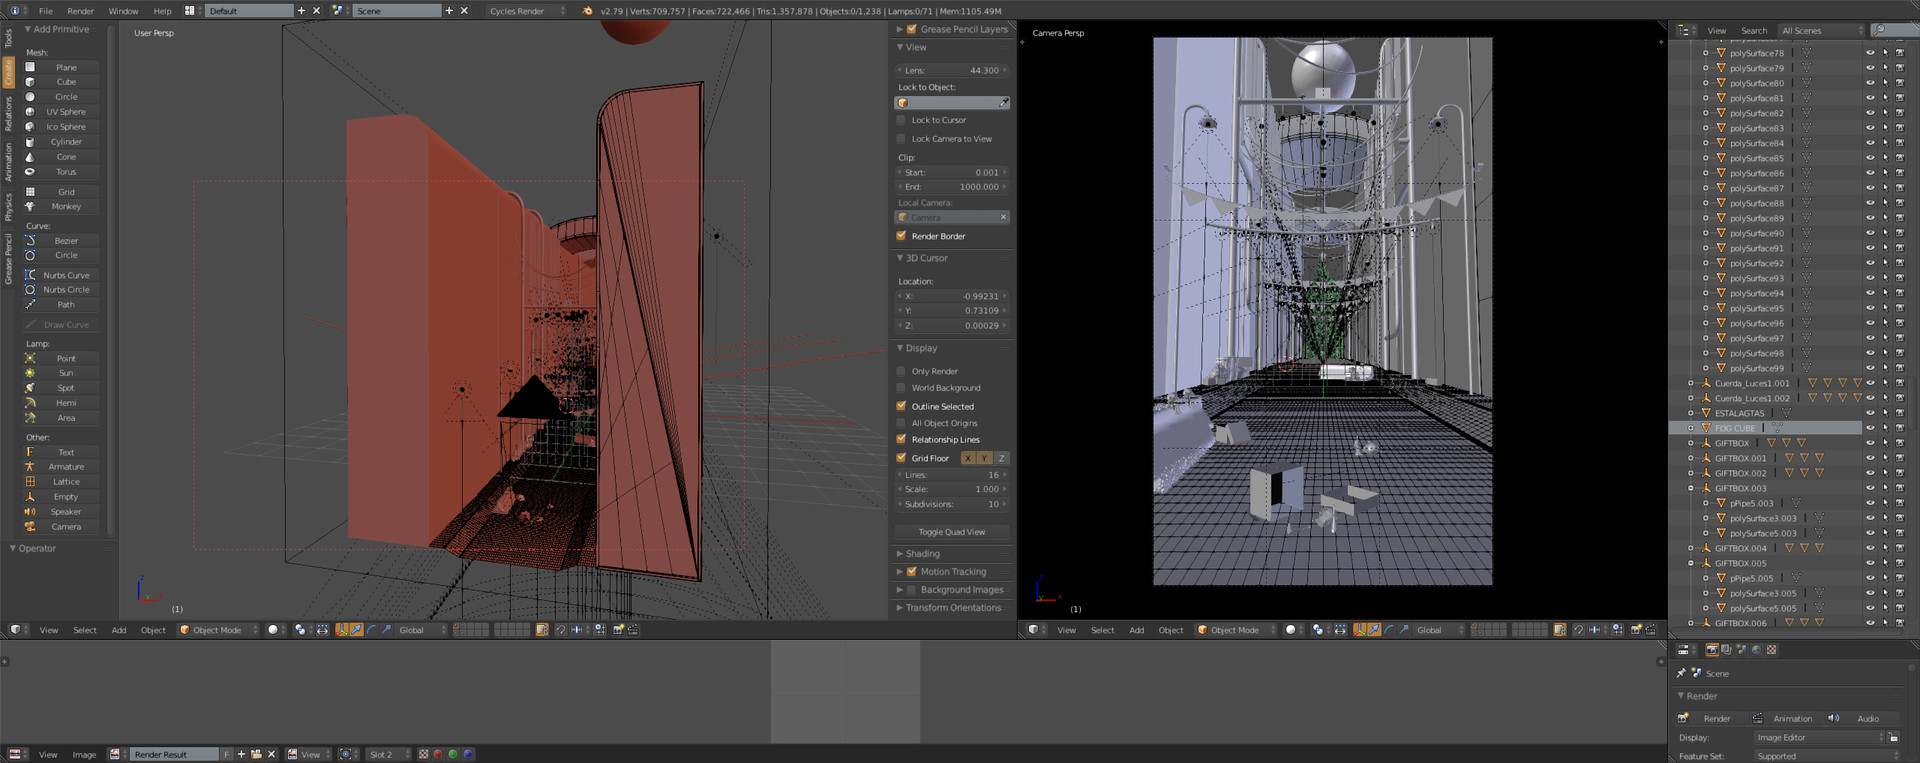 blender interfase